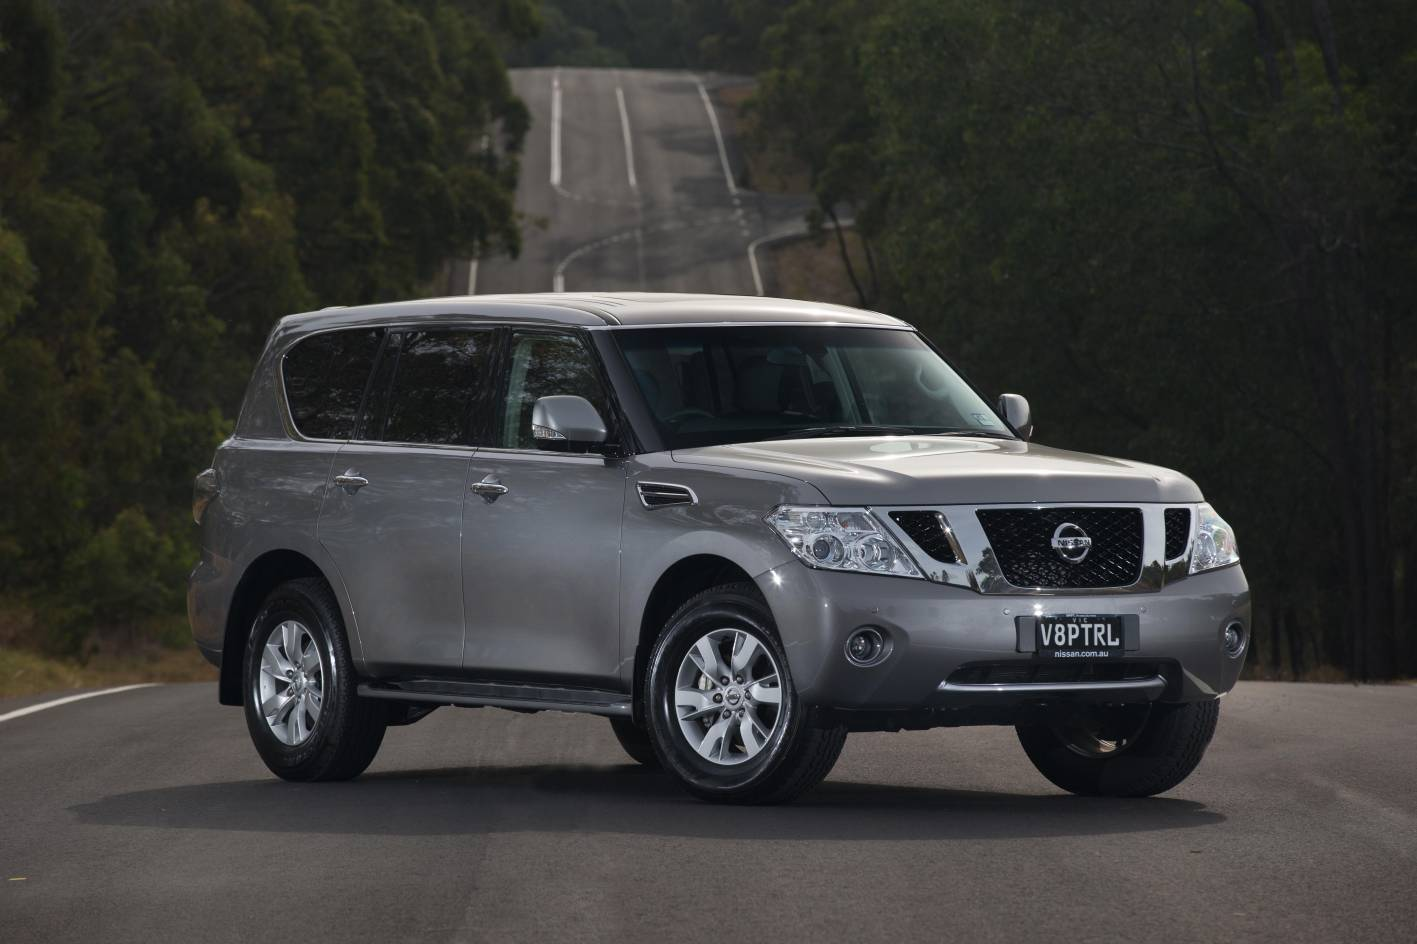 News All New Super Luxury V8 Nissan Patrol On Sale February